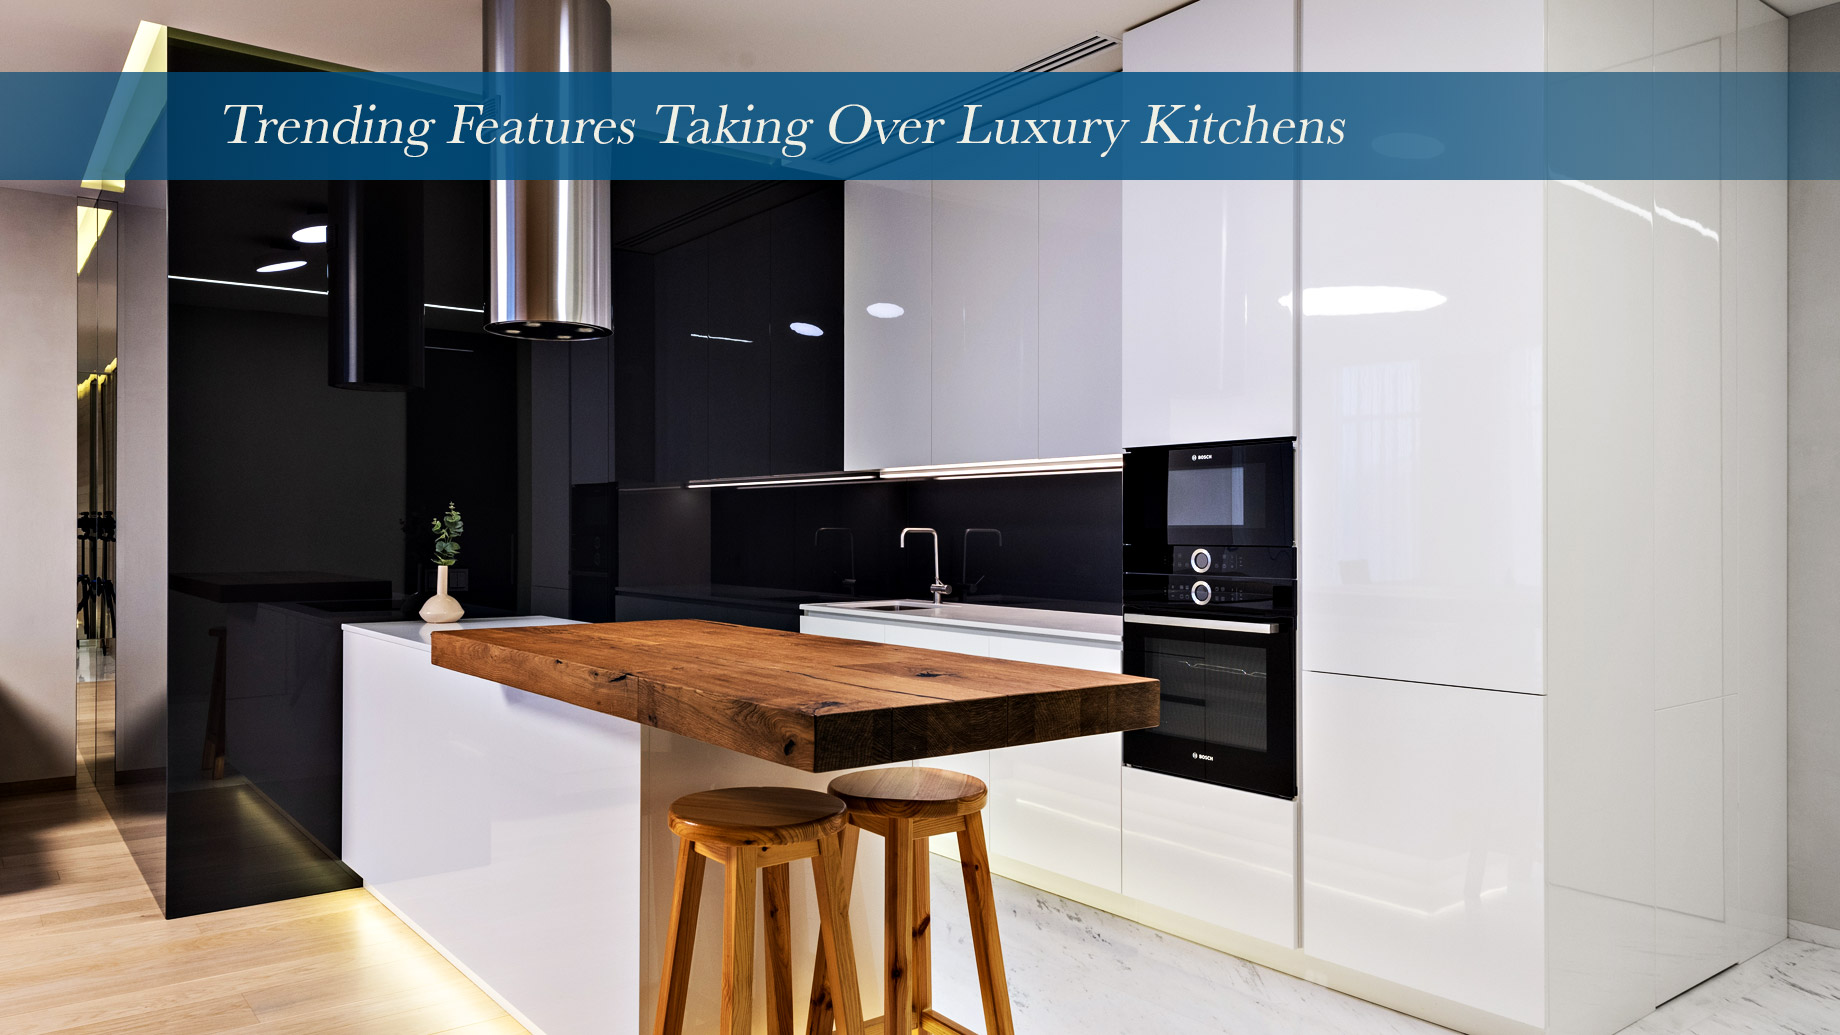 Trending Features Taking Over Luxury Kitchens